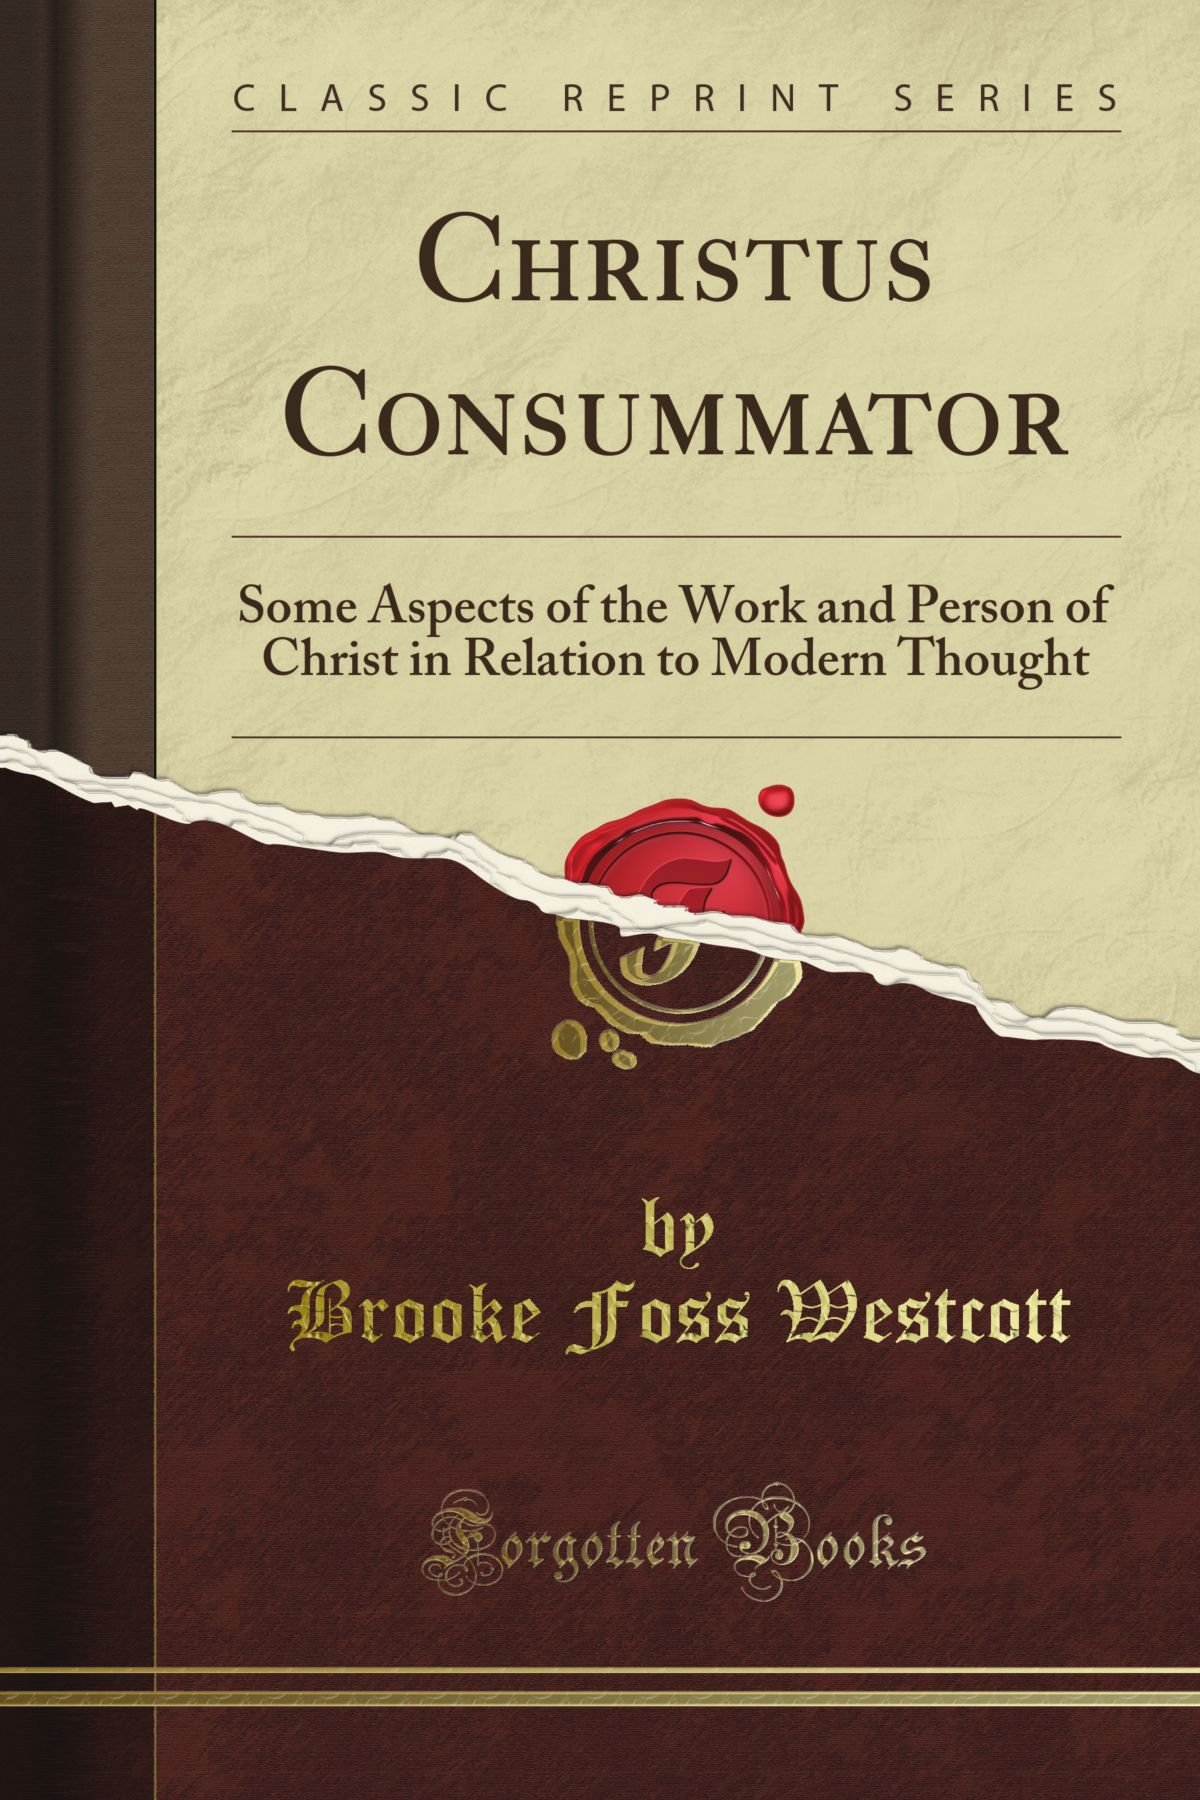 Christus Consummator: Some Aspects of the Work and Person of Christ in Relation to Modern Thought (Classic Reprint) ebook